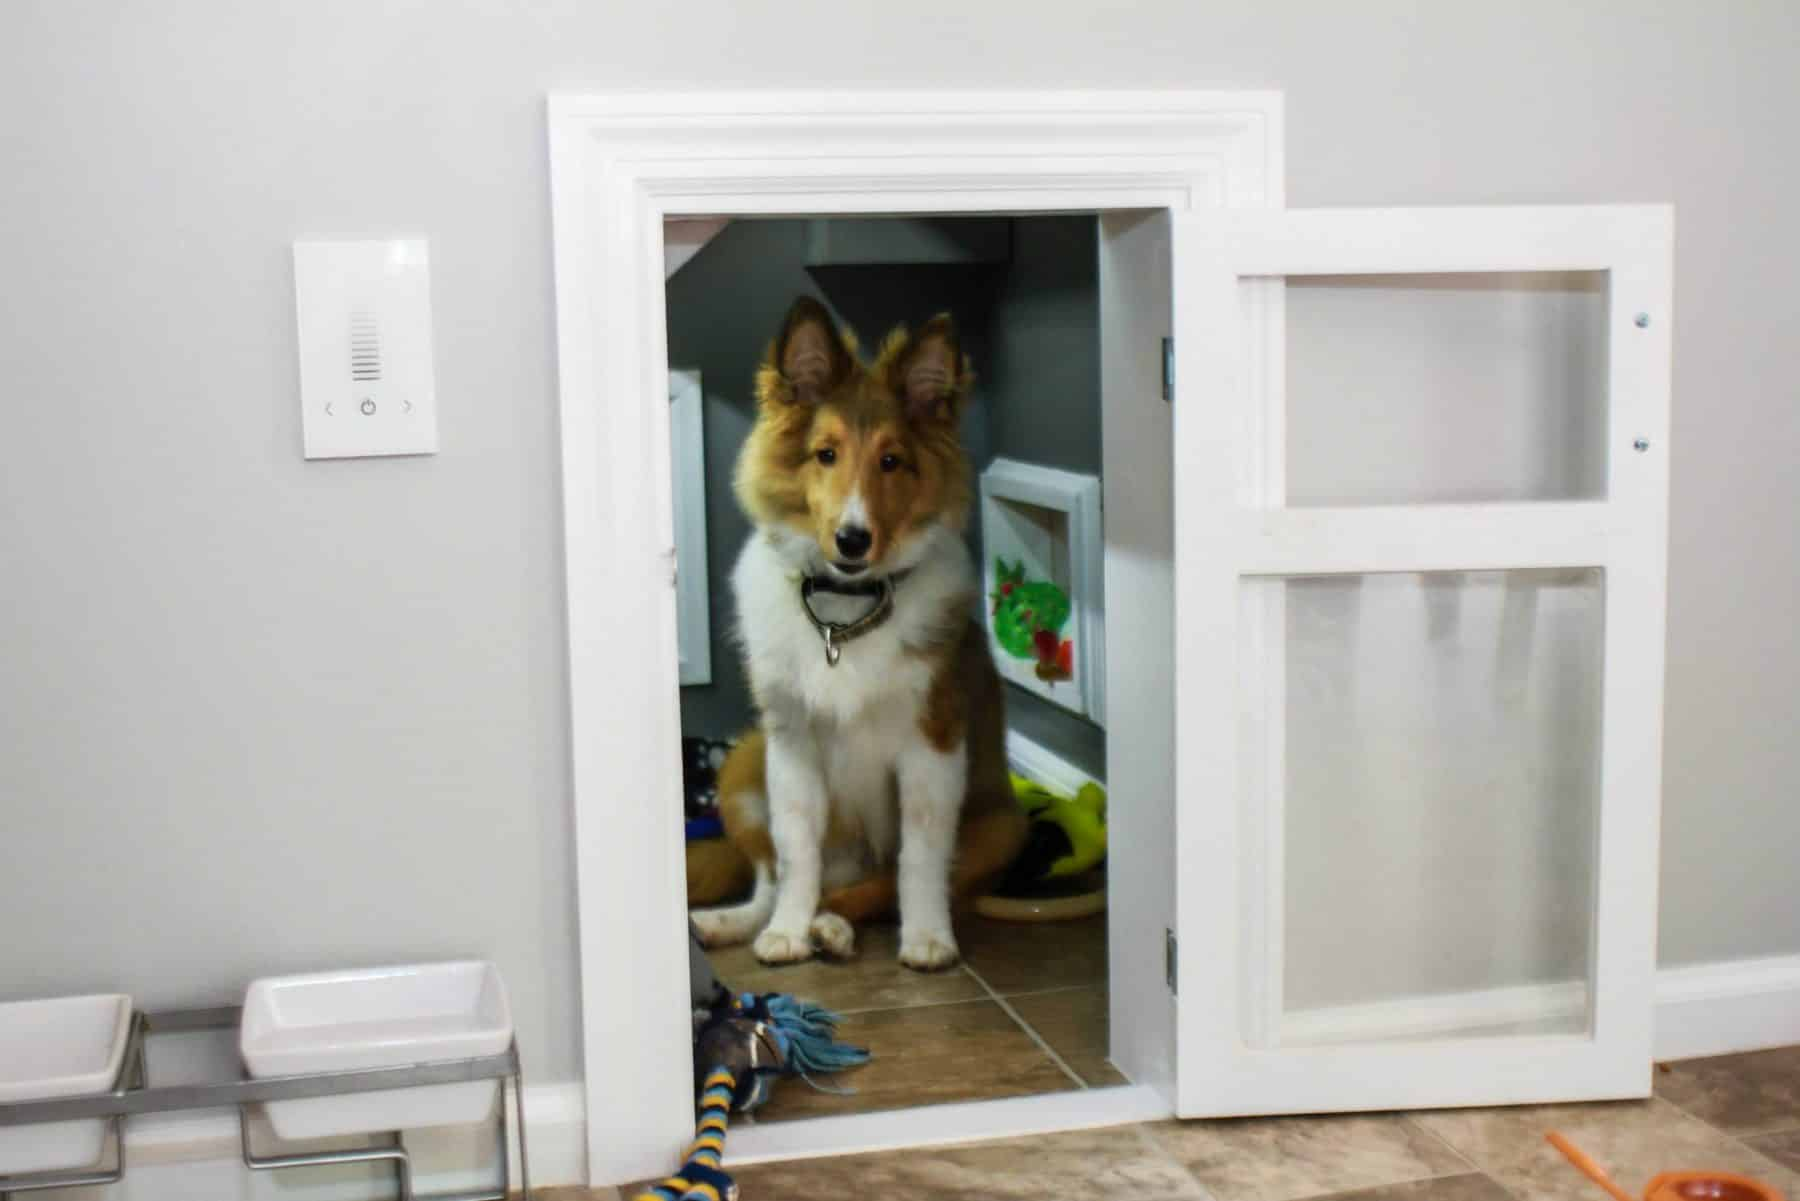 Rooms For Dogs 7 Simple Steps To Creating A Room Just For Your Dog  Rover